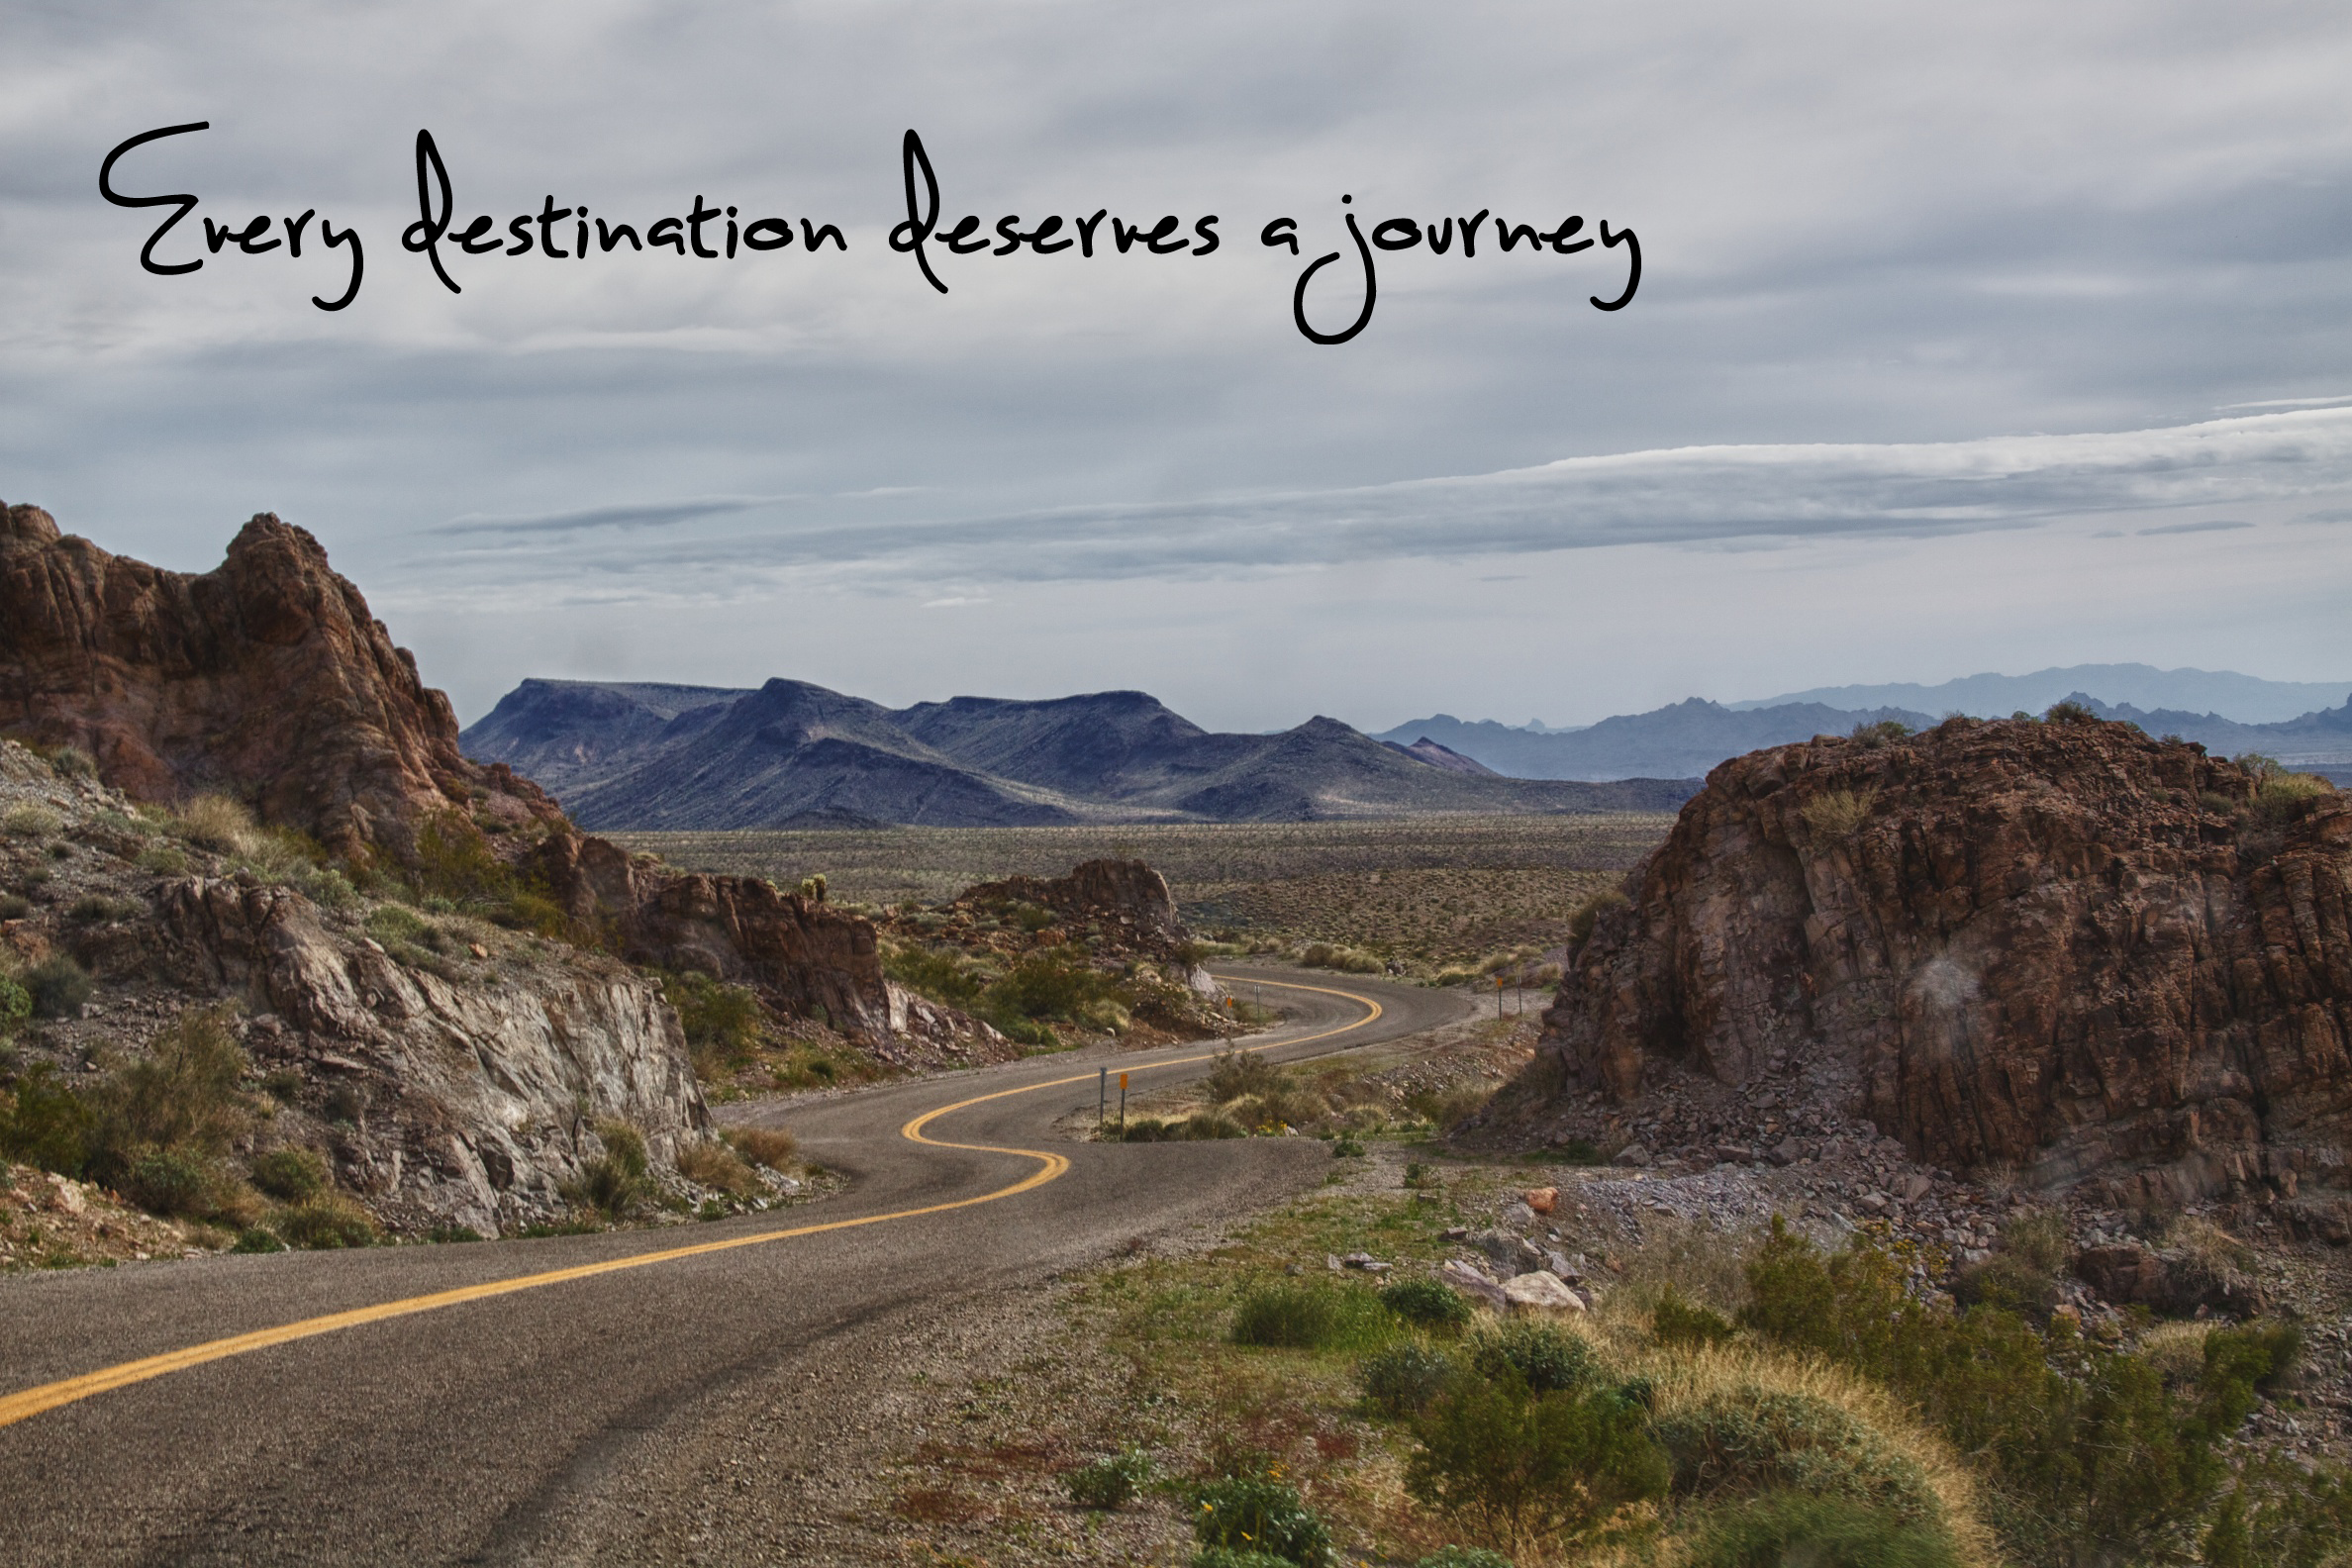 Every destination deserves a journey...